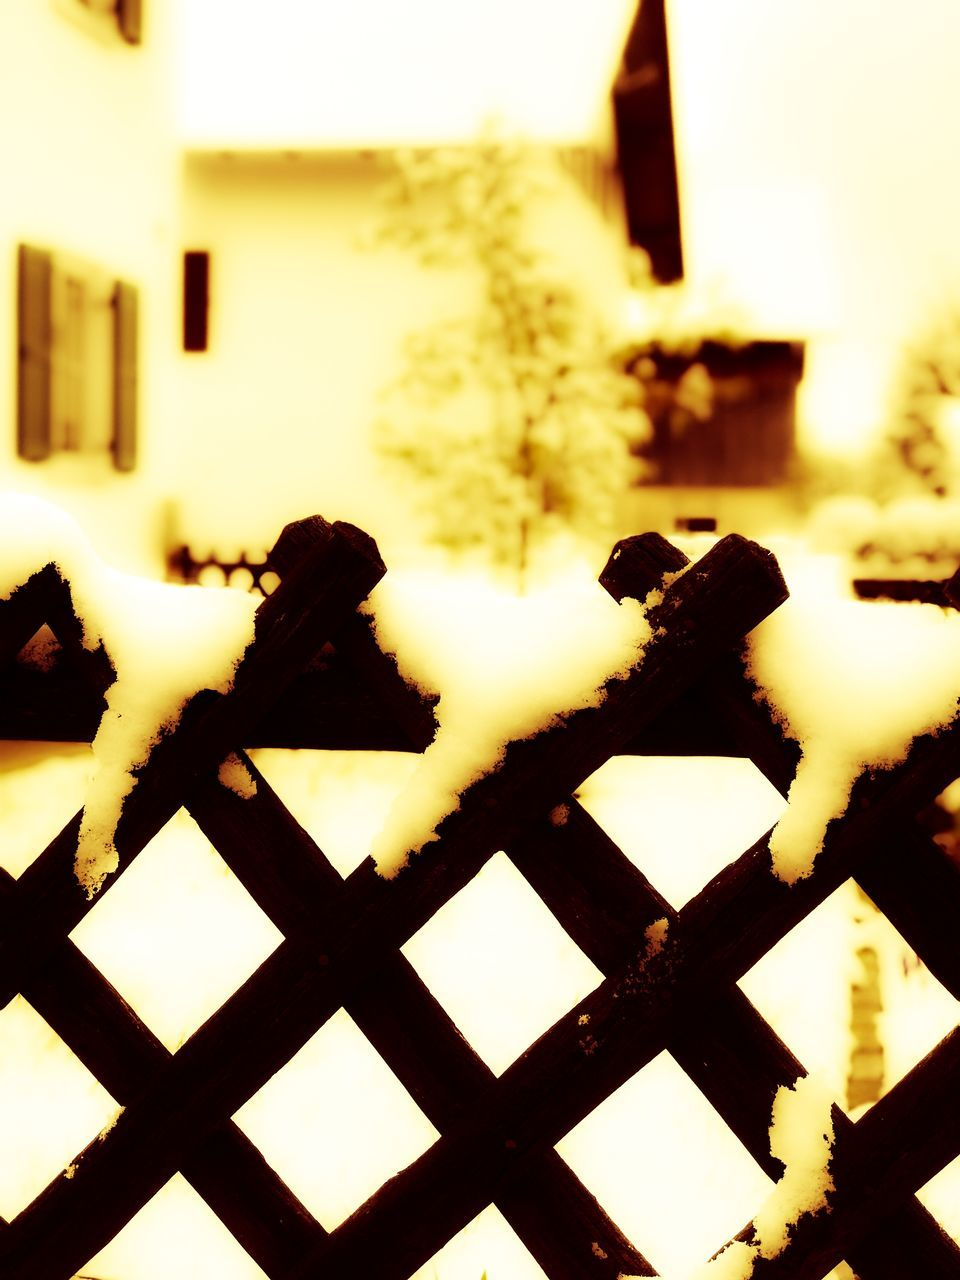 no people, focus on foreground, winter, close-up, snow, outdoors, nature, day, animal themes, mammal, sky